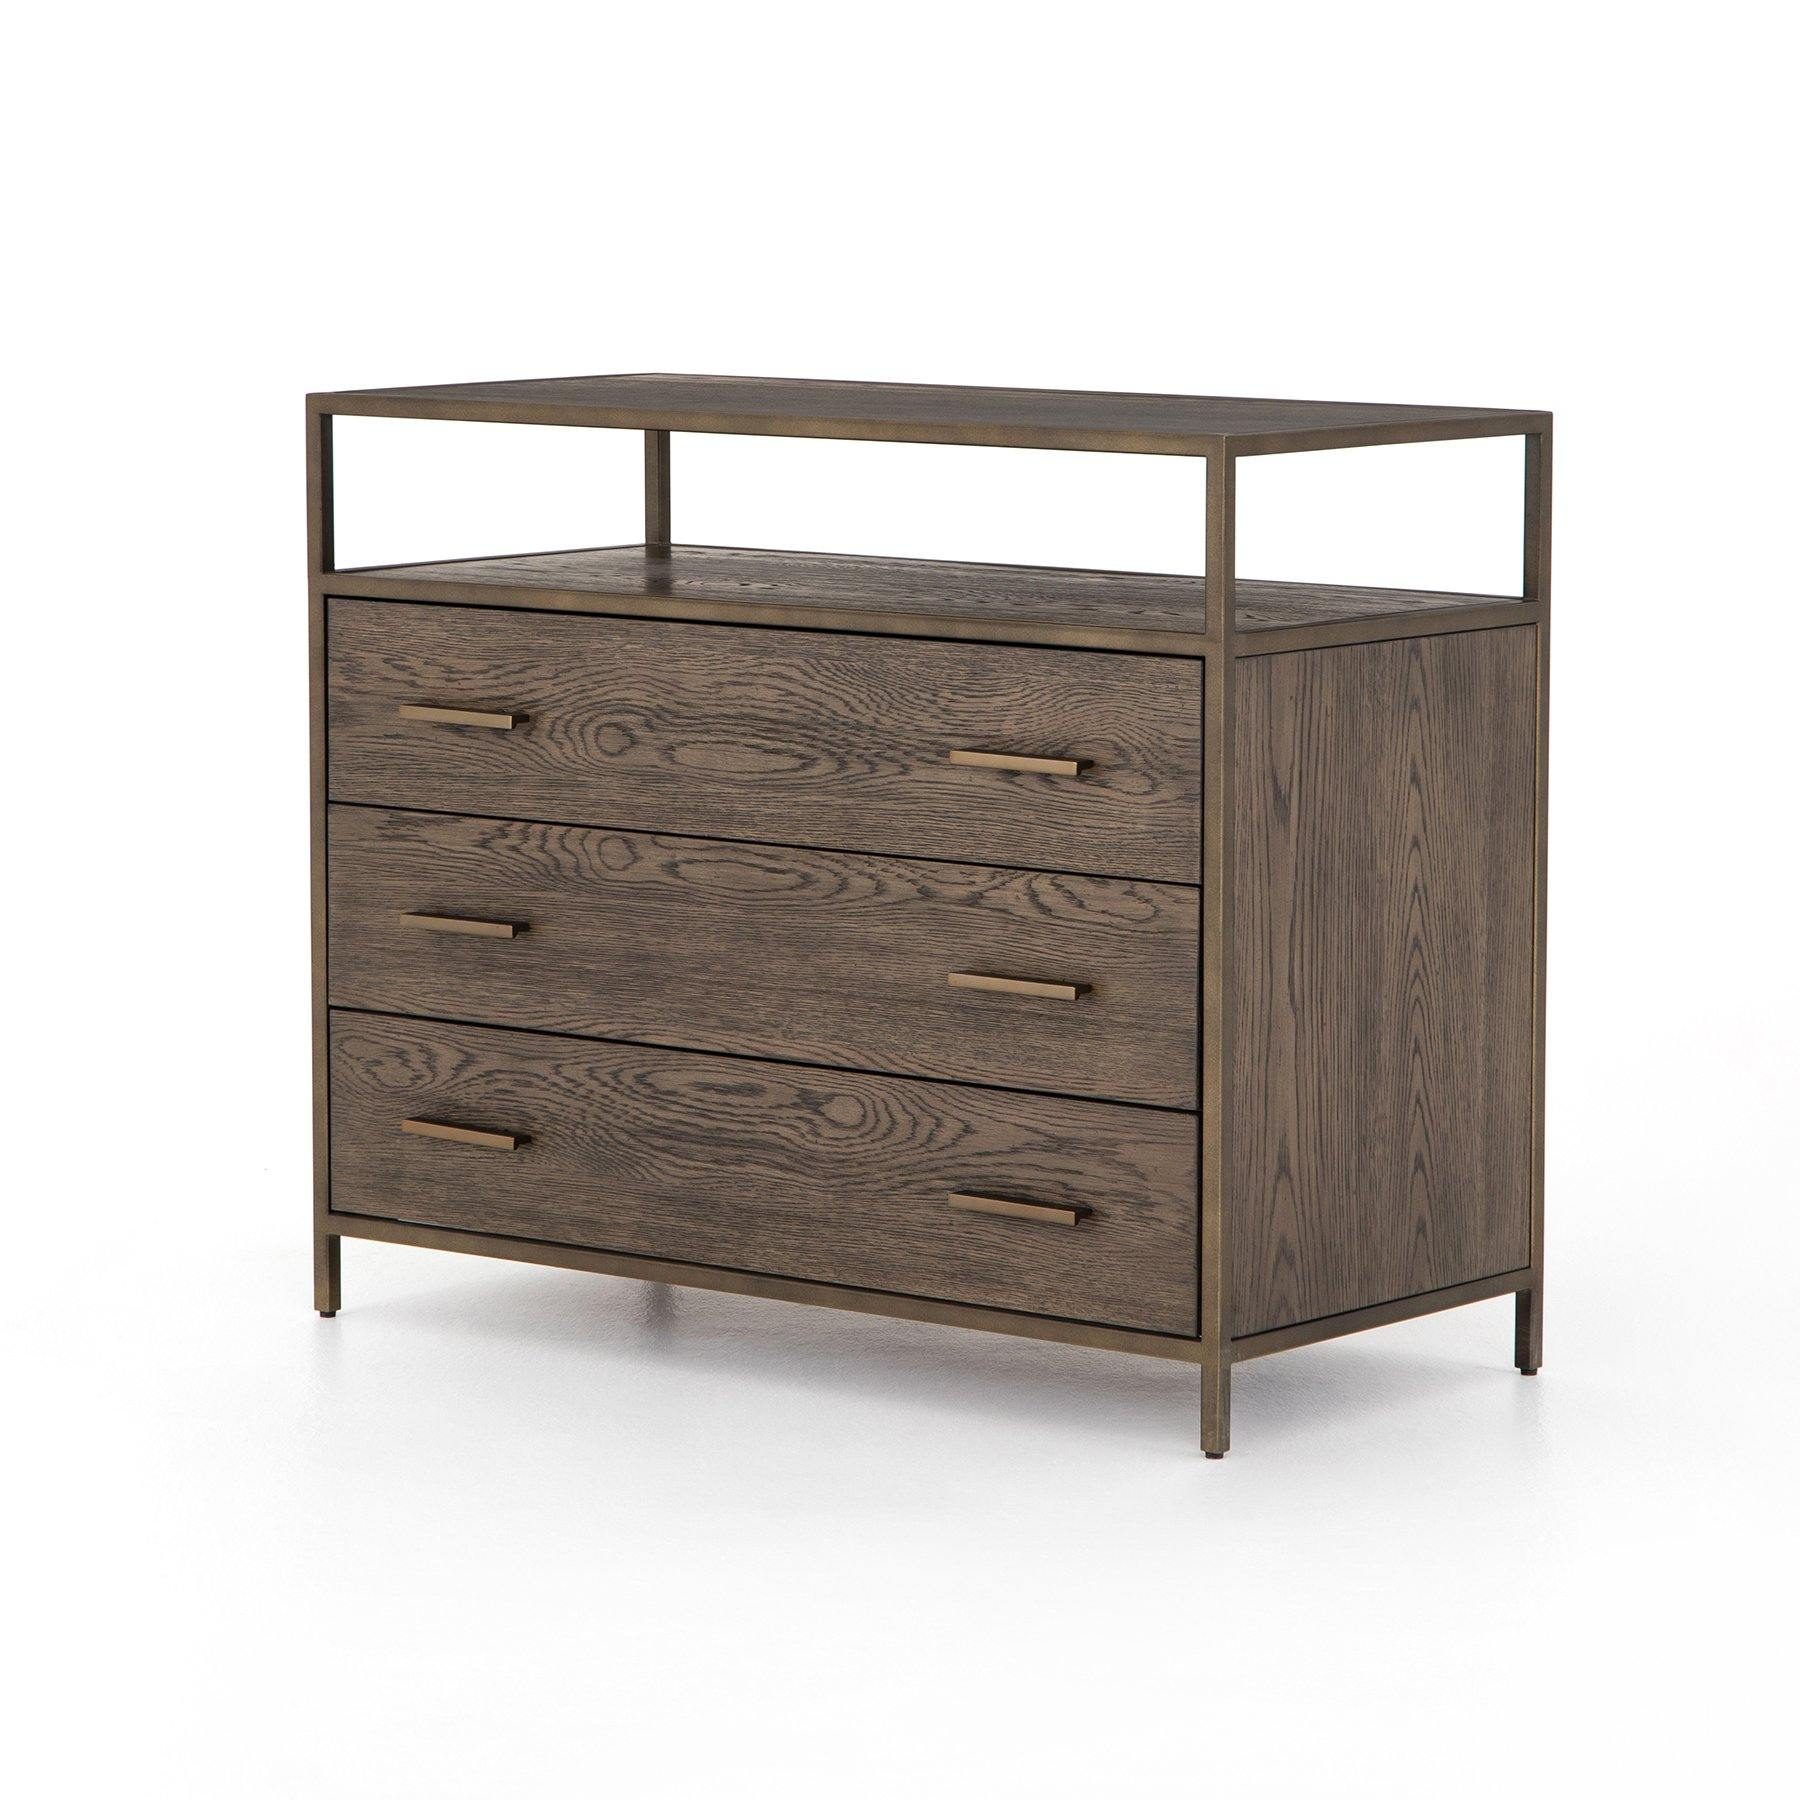 Mason 3 Drawer Dresser - Reimagine Designs